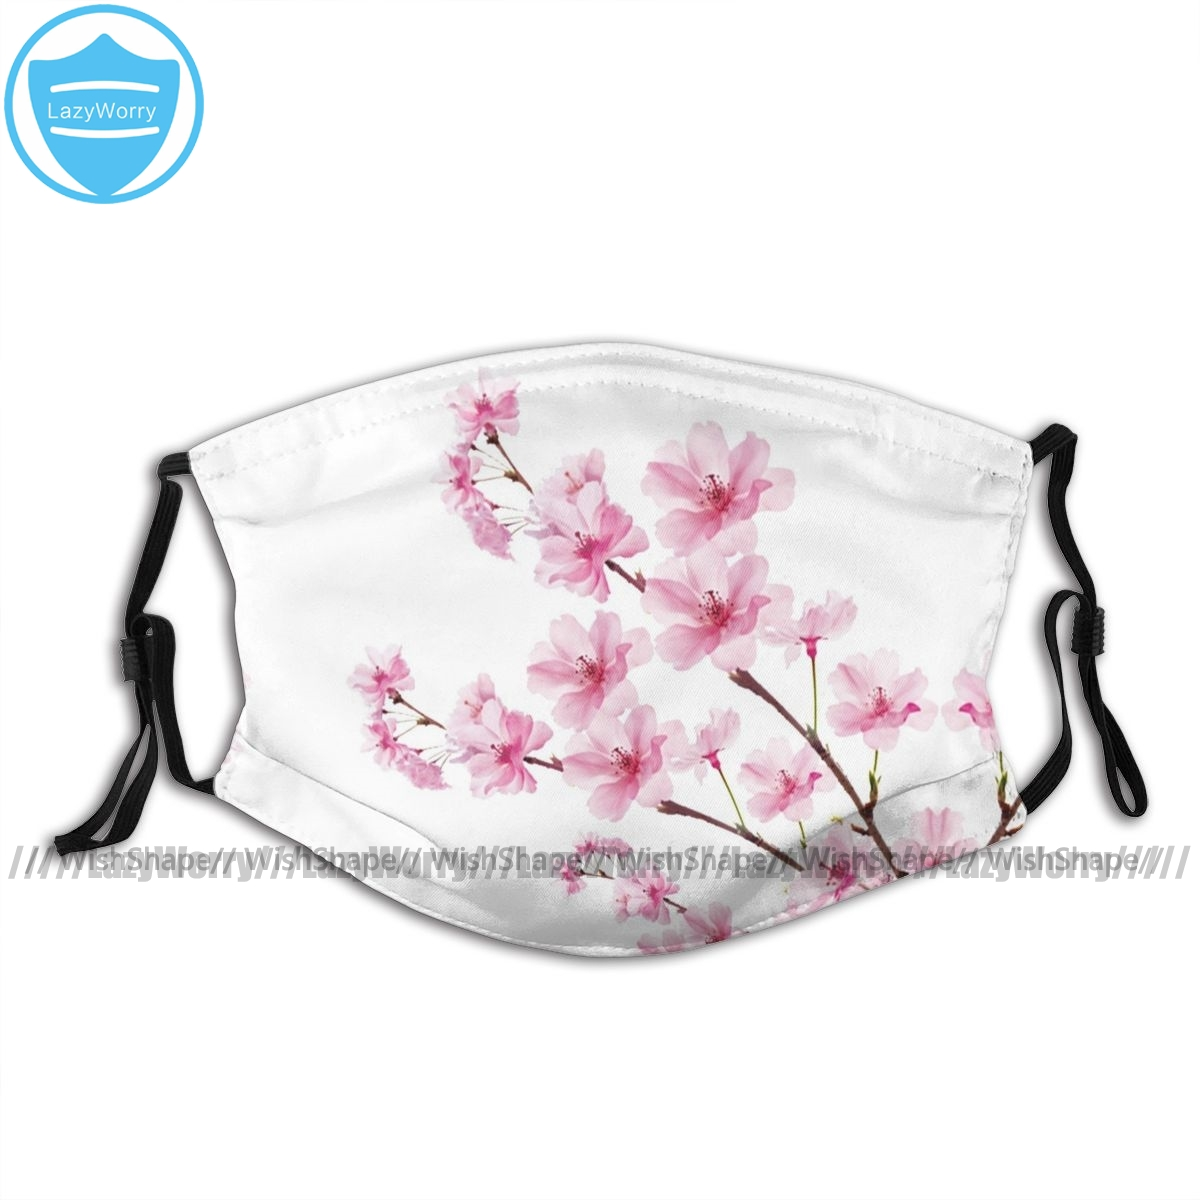 Sakura Mouth Face Mask Sakura Cherry Blossom Facial Mask Fashion Funny With 2 Filters For Adult